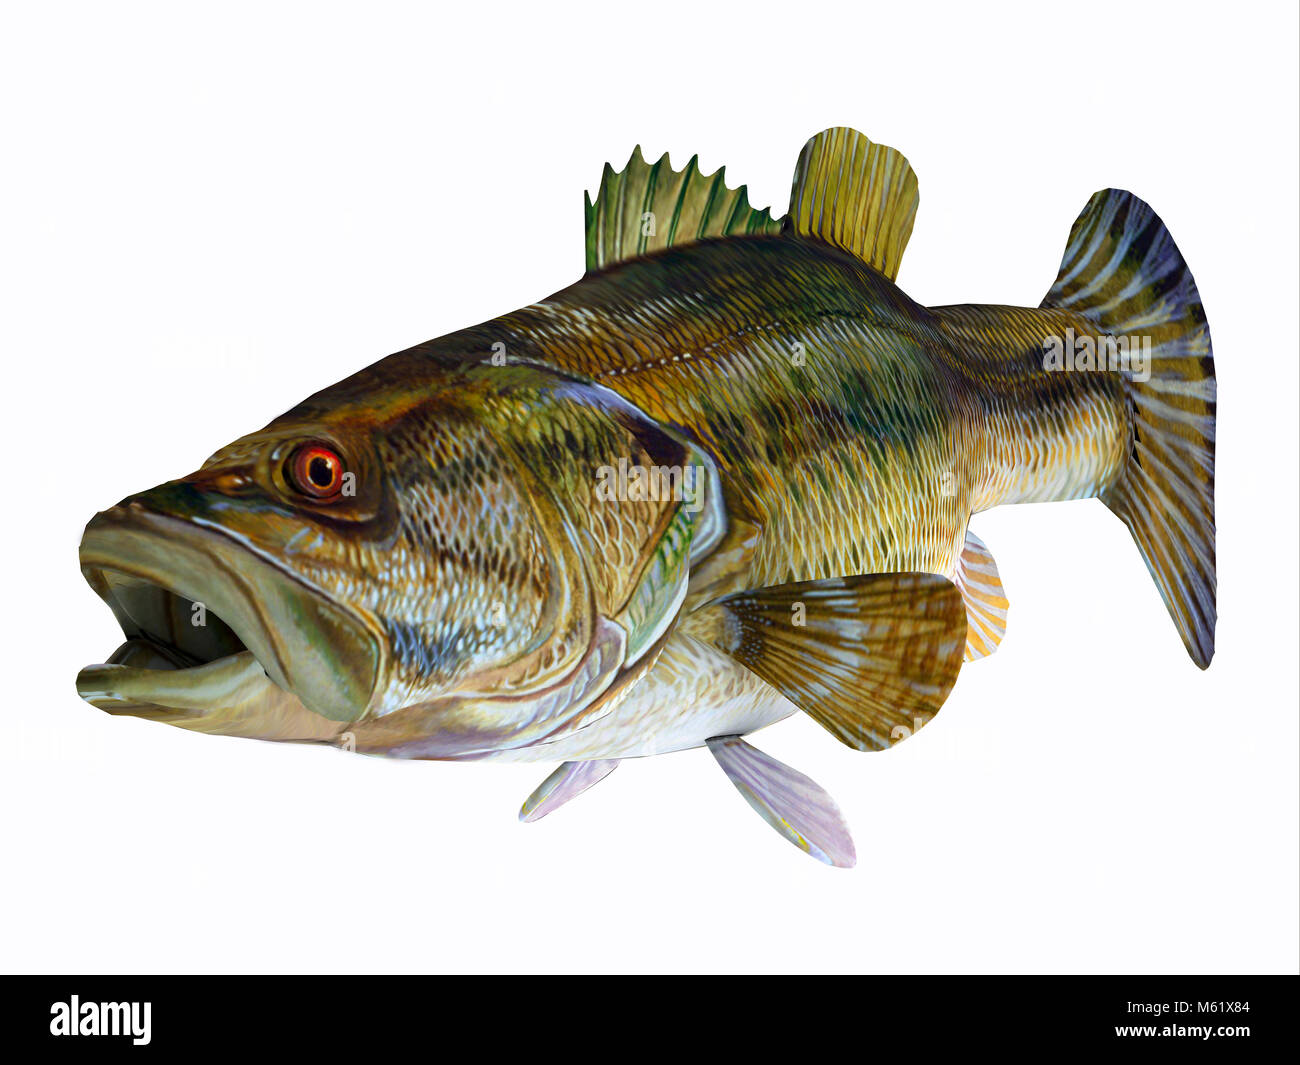 The Redeye Bass is a popular freshwater gamefish which has a diet consisting mostly of insects. - Stock Image